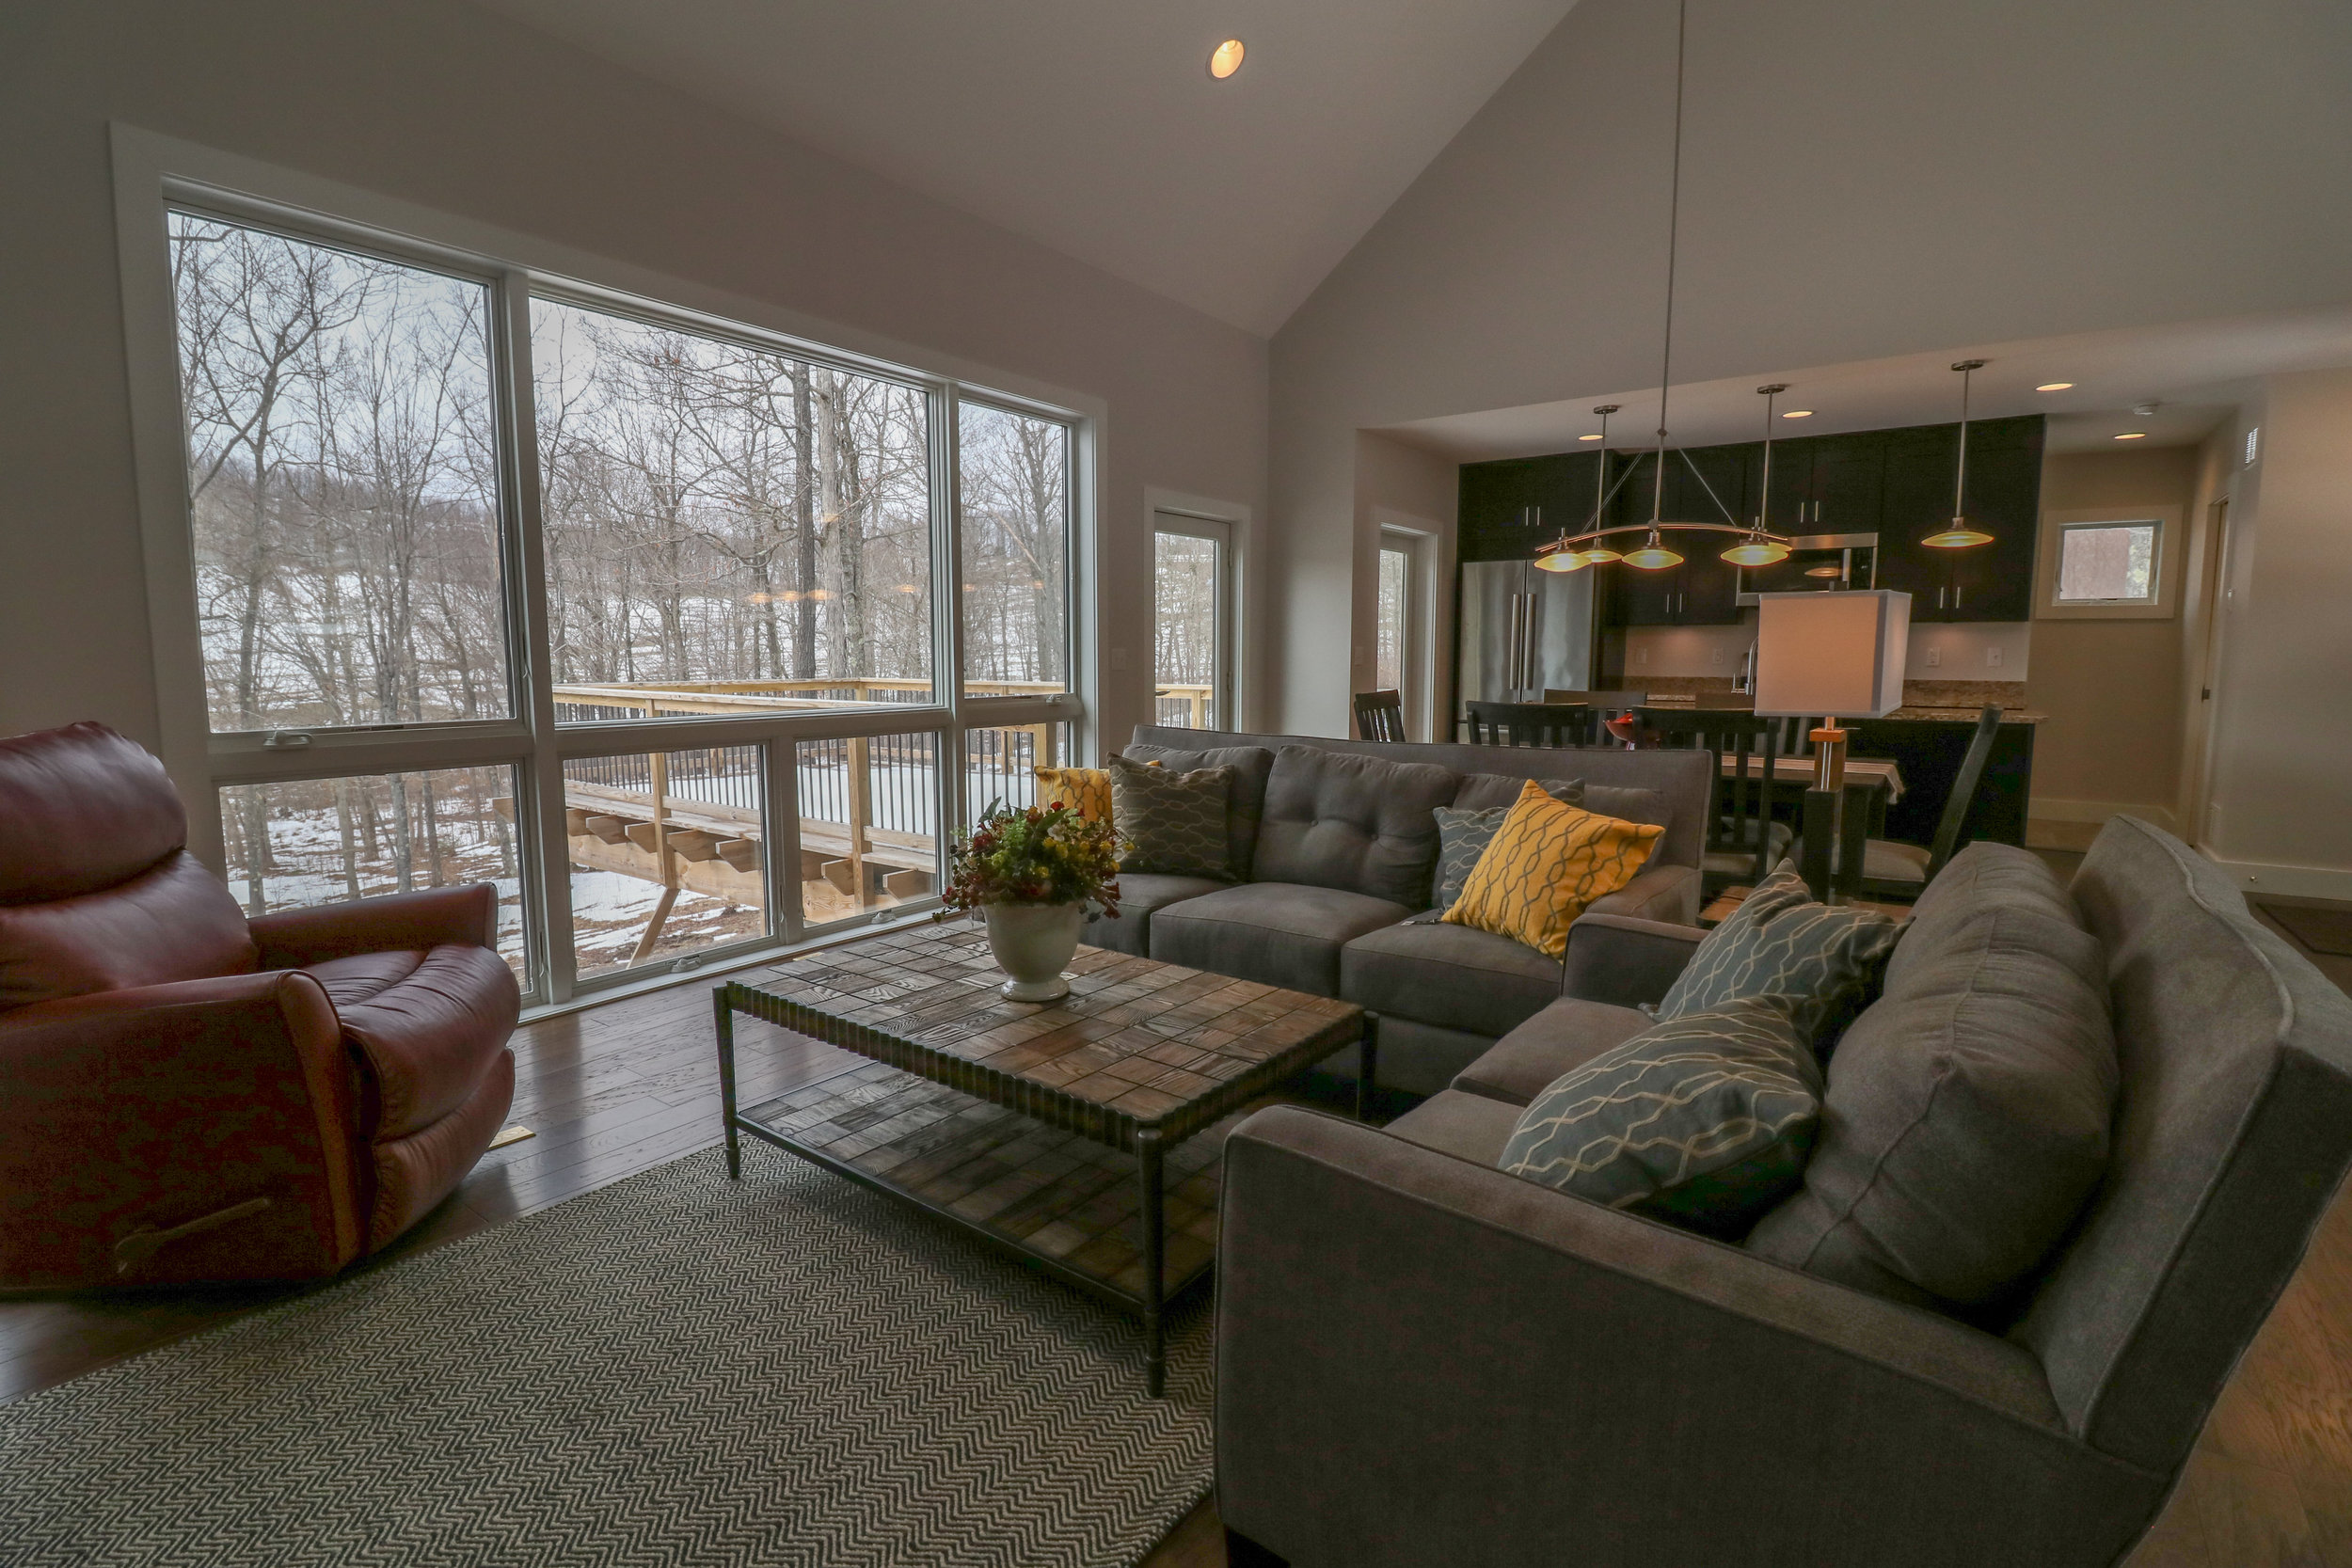 gosnell_builders_home_for_sale_ridgeview_valley20.jpg